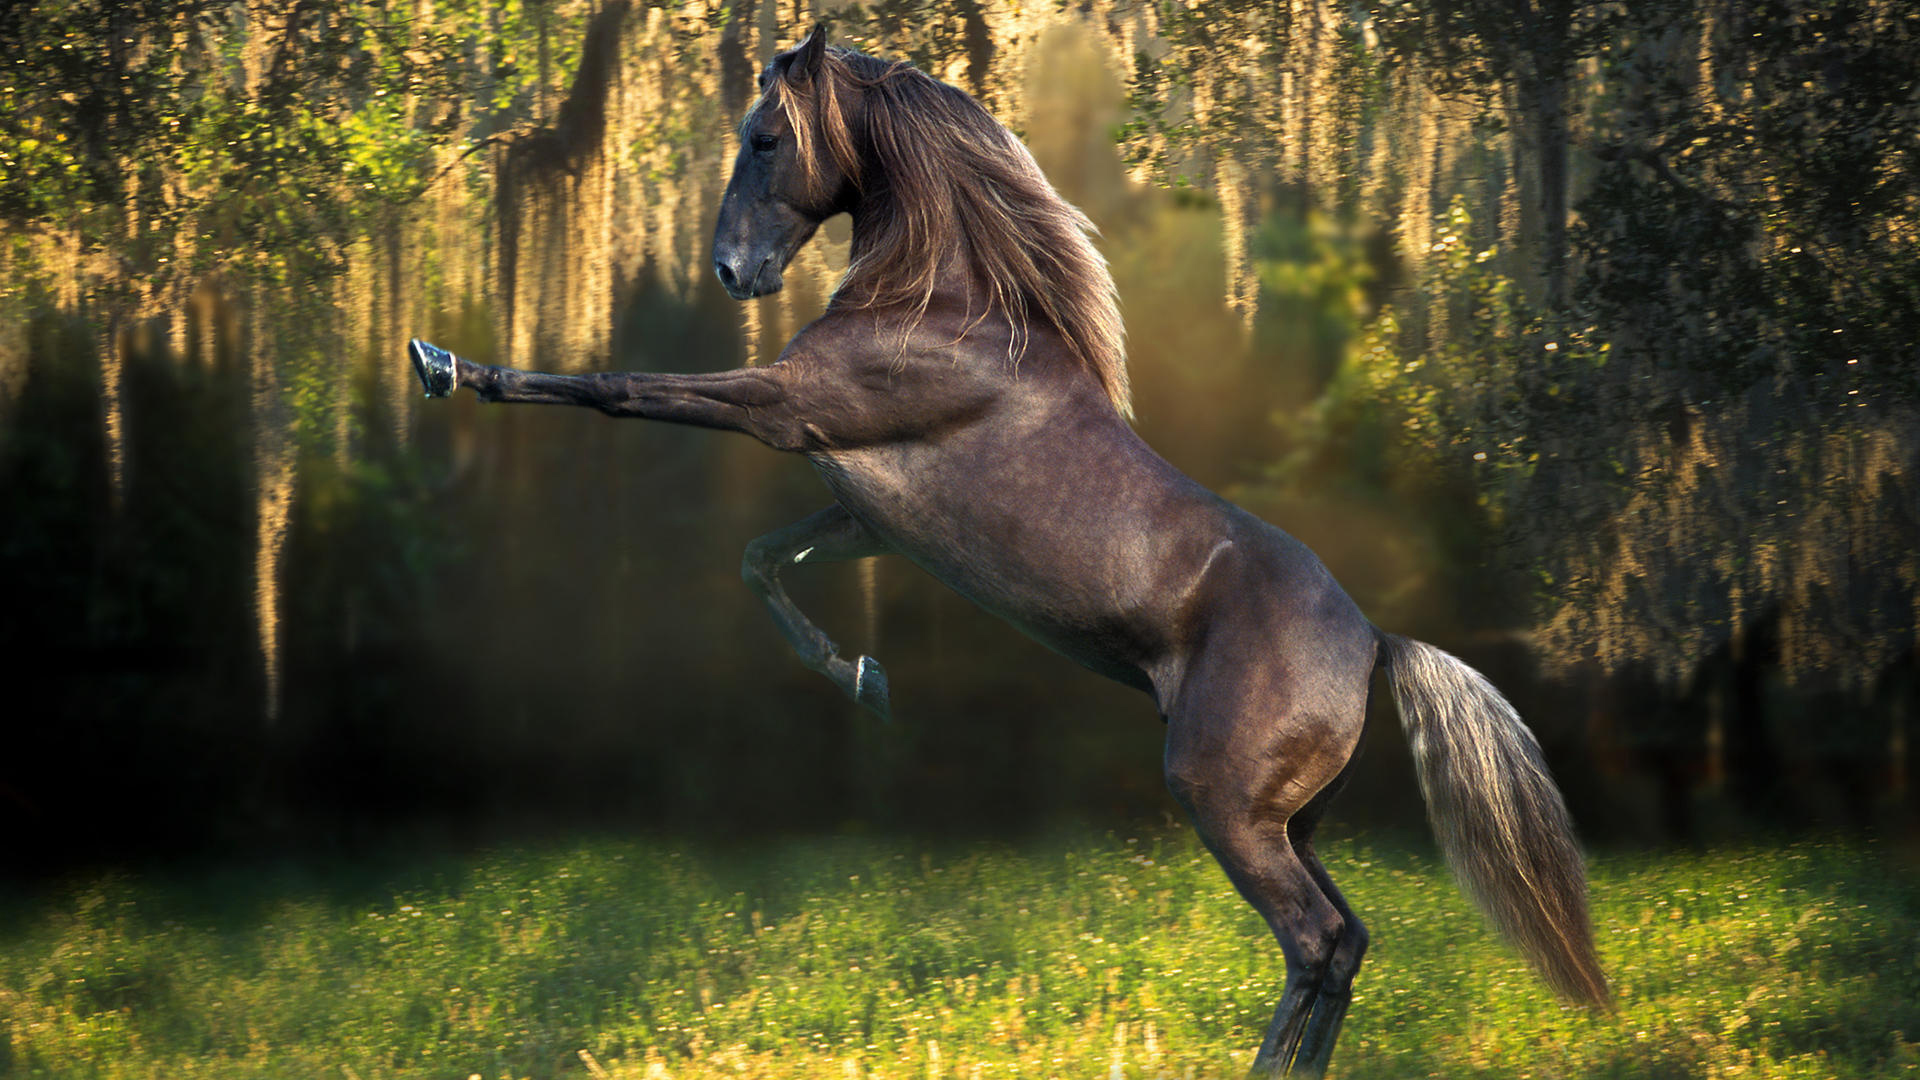 Beautiful HD Horse Wallpapers  HDWallSource WallpapersWide Seven Horse Wallpapers Group  1920x1080